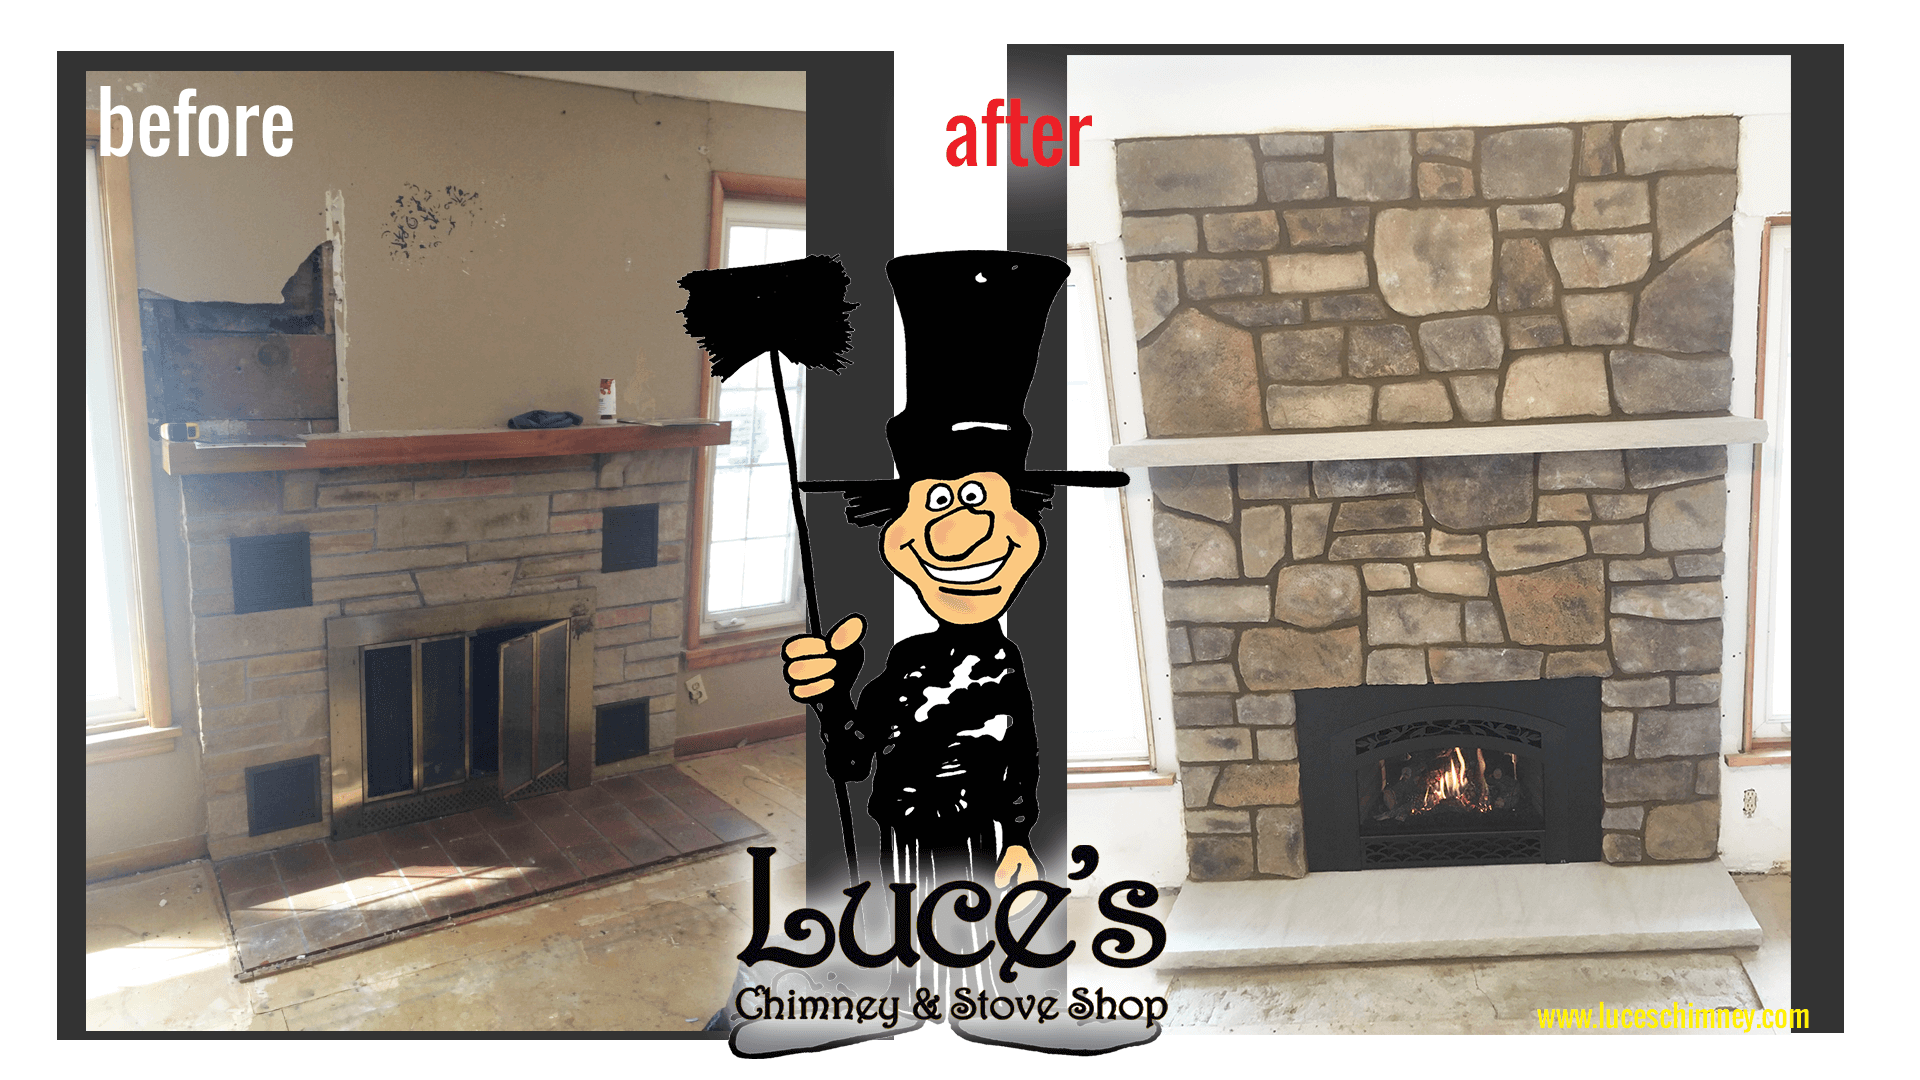 Old fireplace updated in a modern fireplace design stonework. Fireplace design by Luce's Chimney and Stove Shop, serving Ohio, Michigan and Indiana.